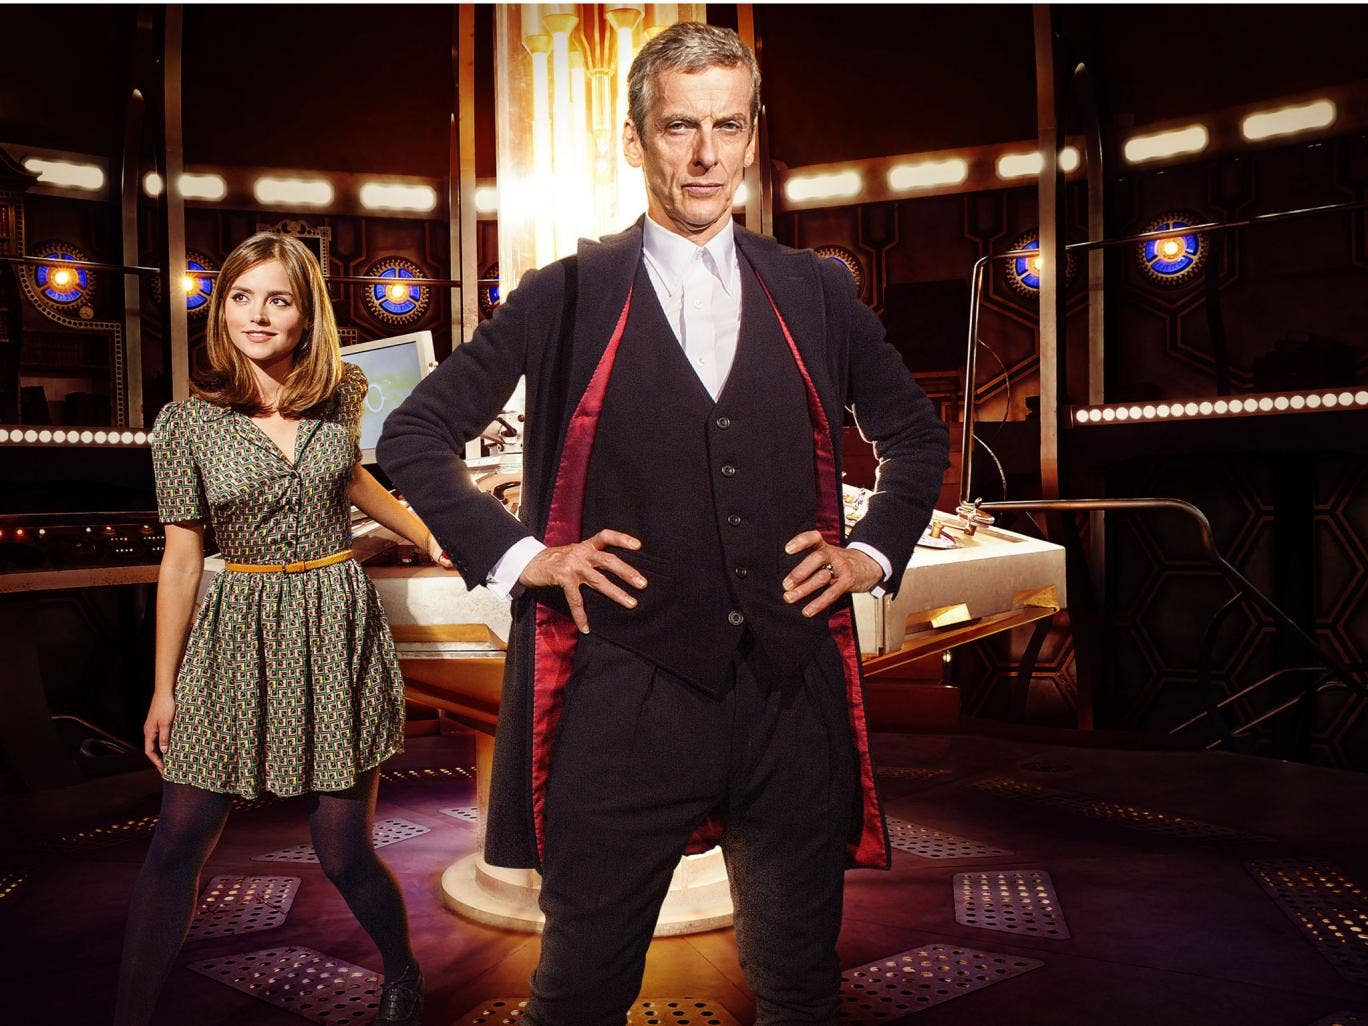 Peter Capaldi and Jenna Coleman will star in Doctor Who series 8 in August